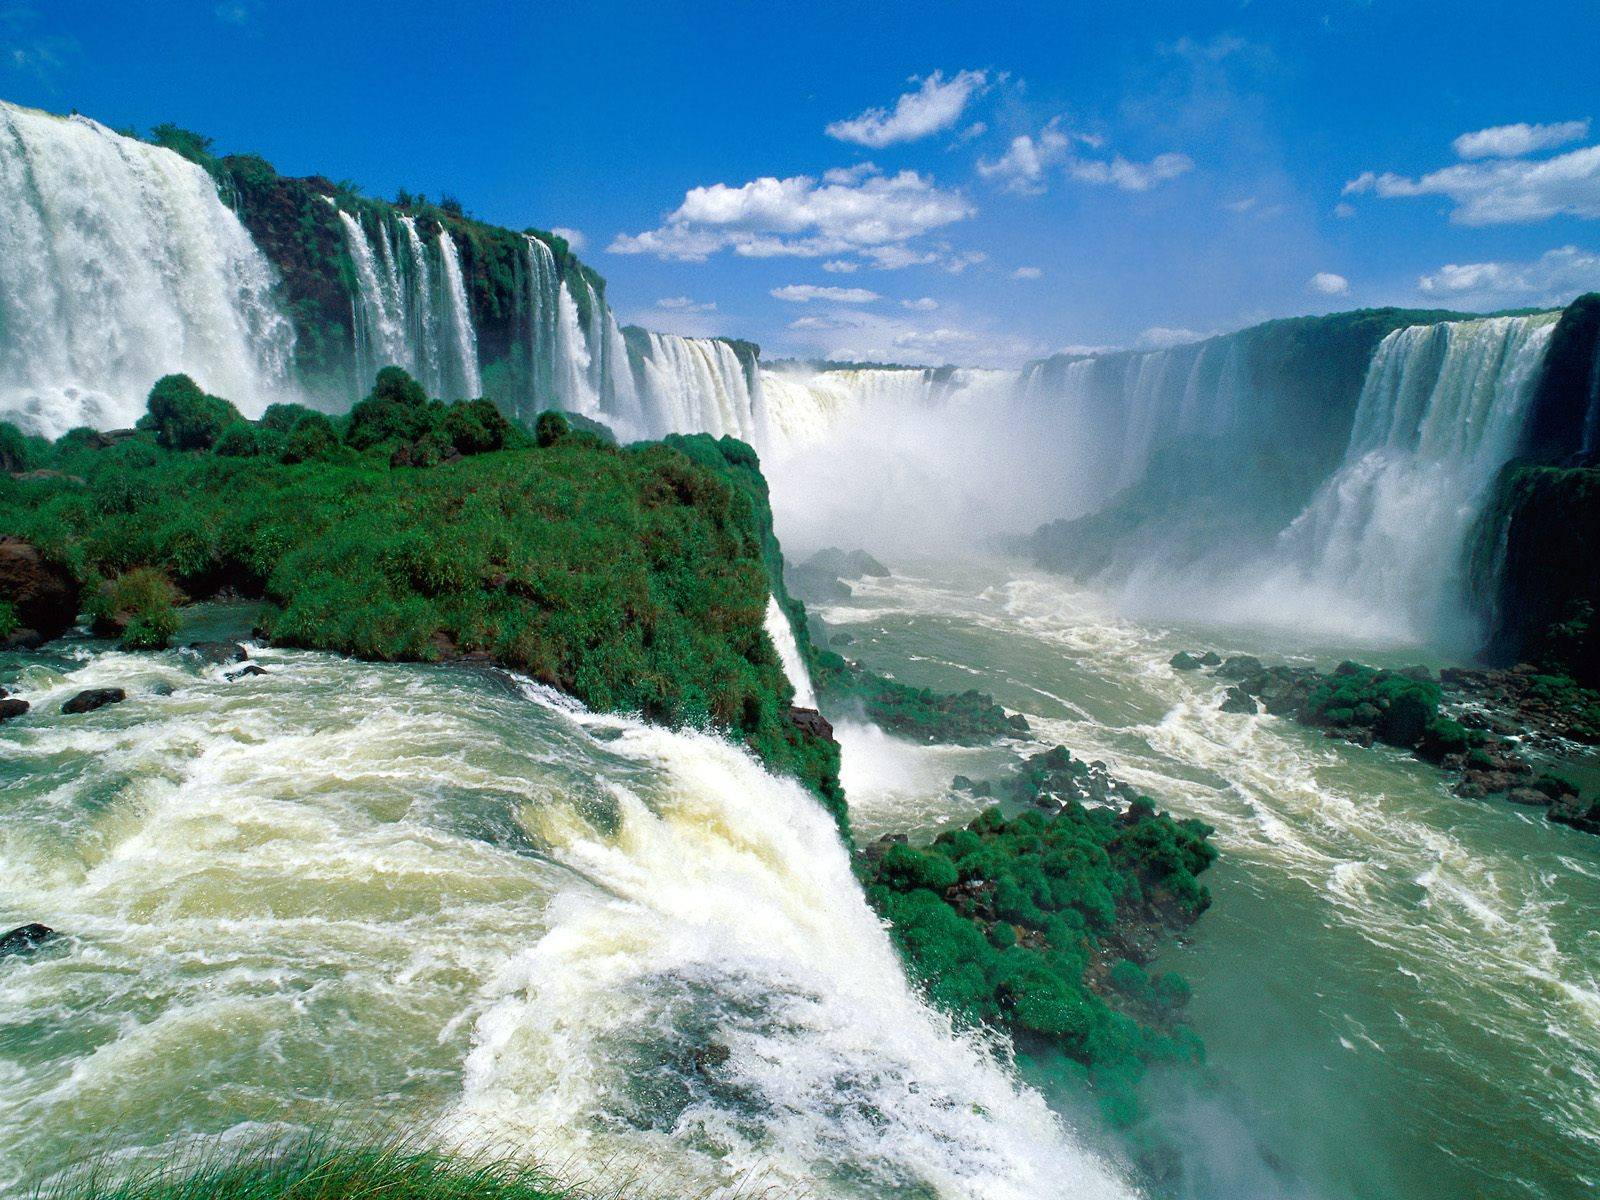 Natural Wonder of Iguazu Falls